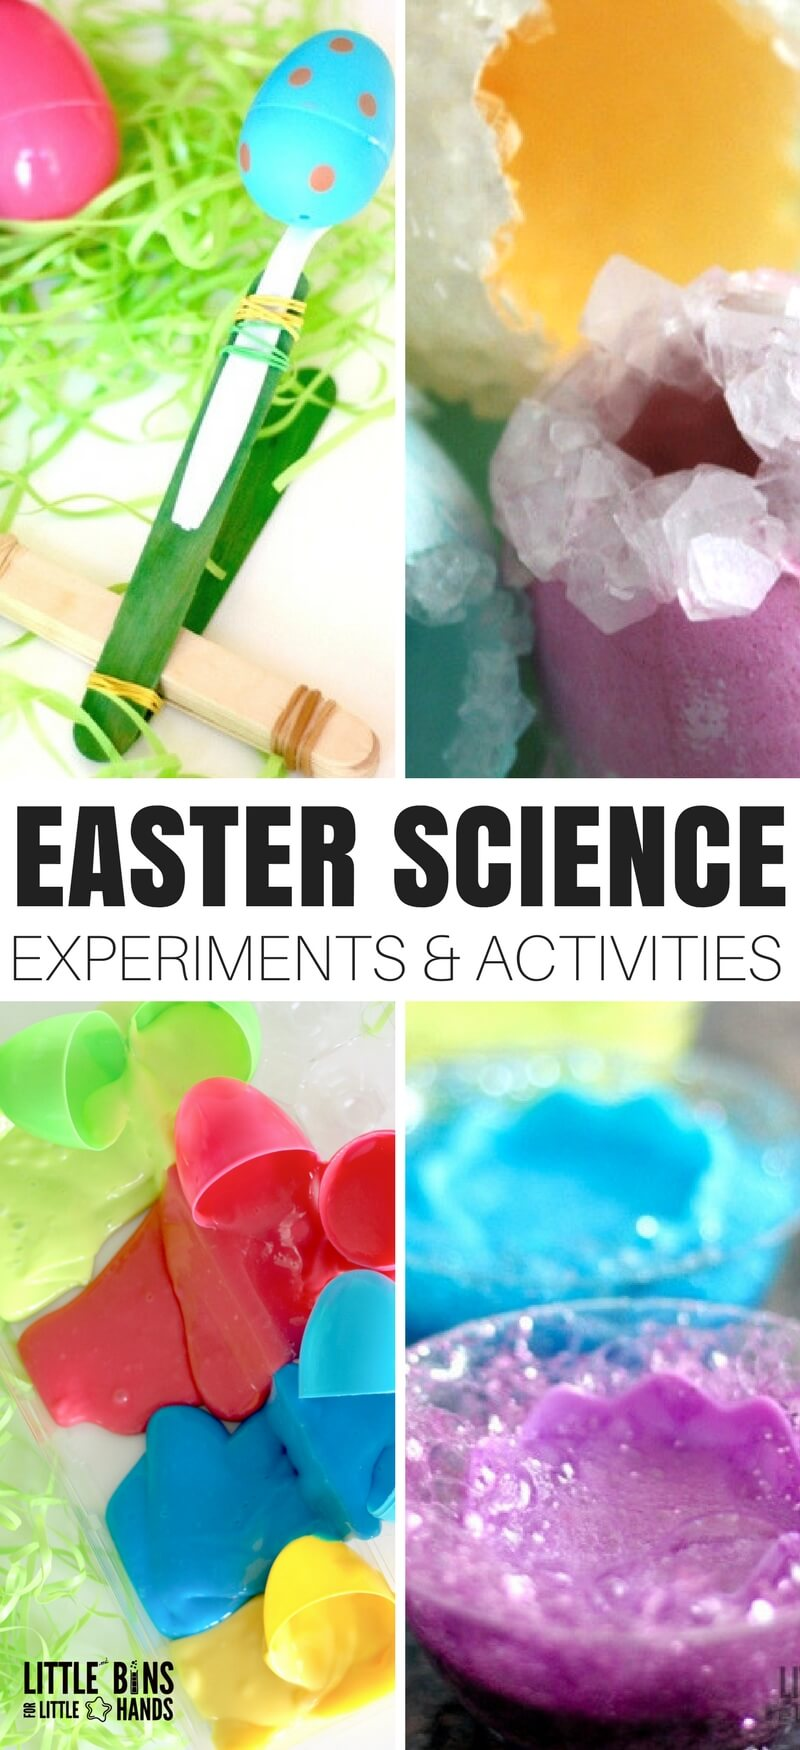 medium resolution of Easter Science Activities and Experiments   Little Bins for Little Hands